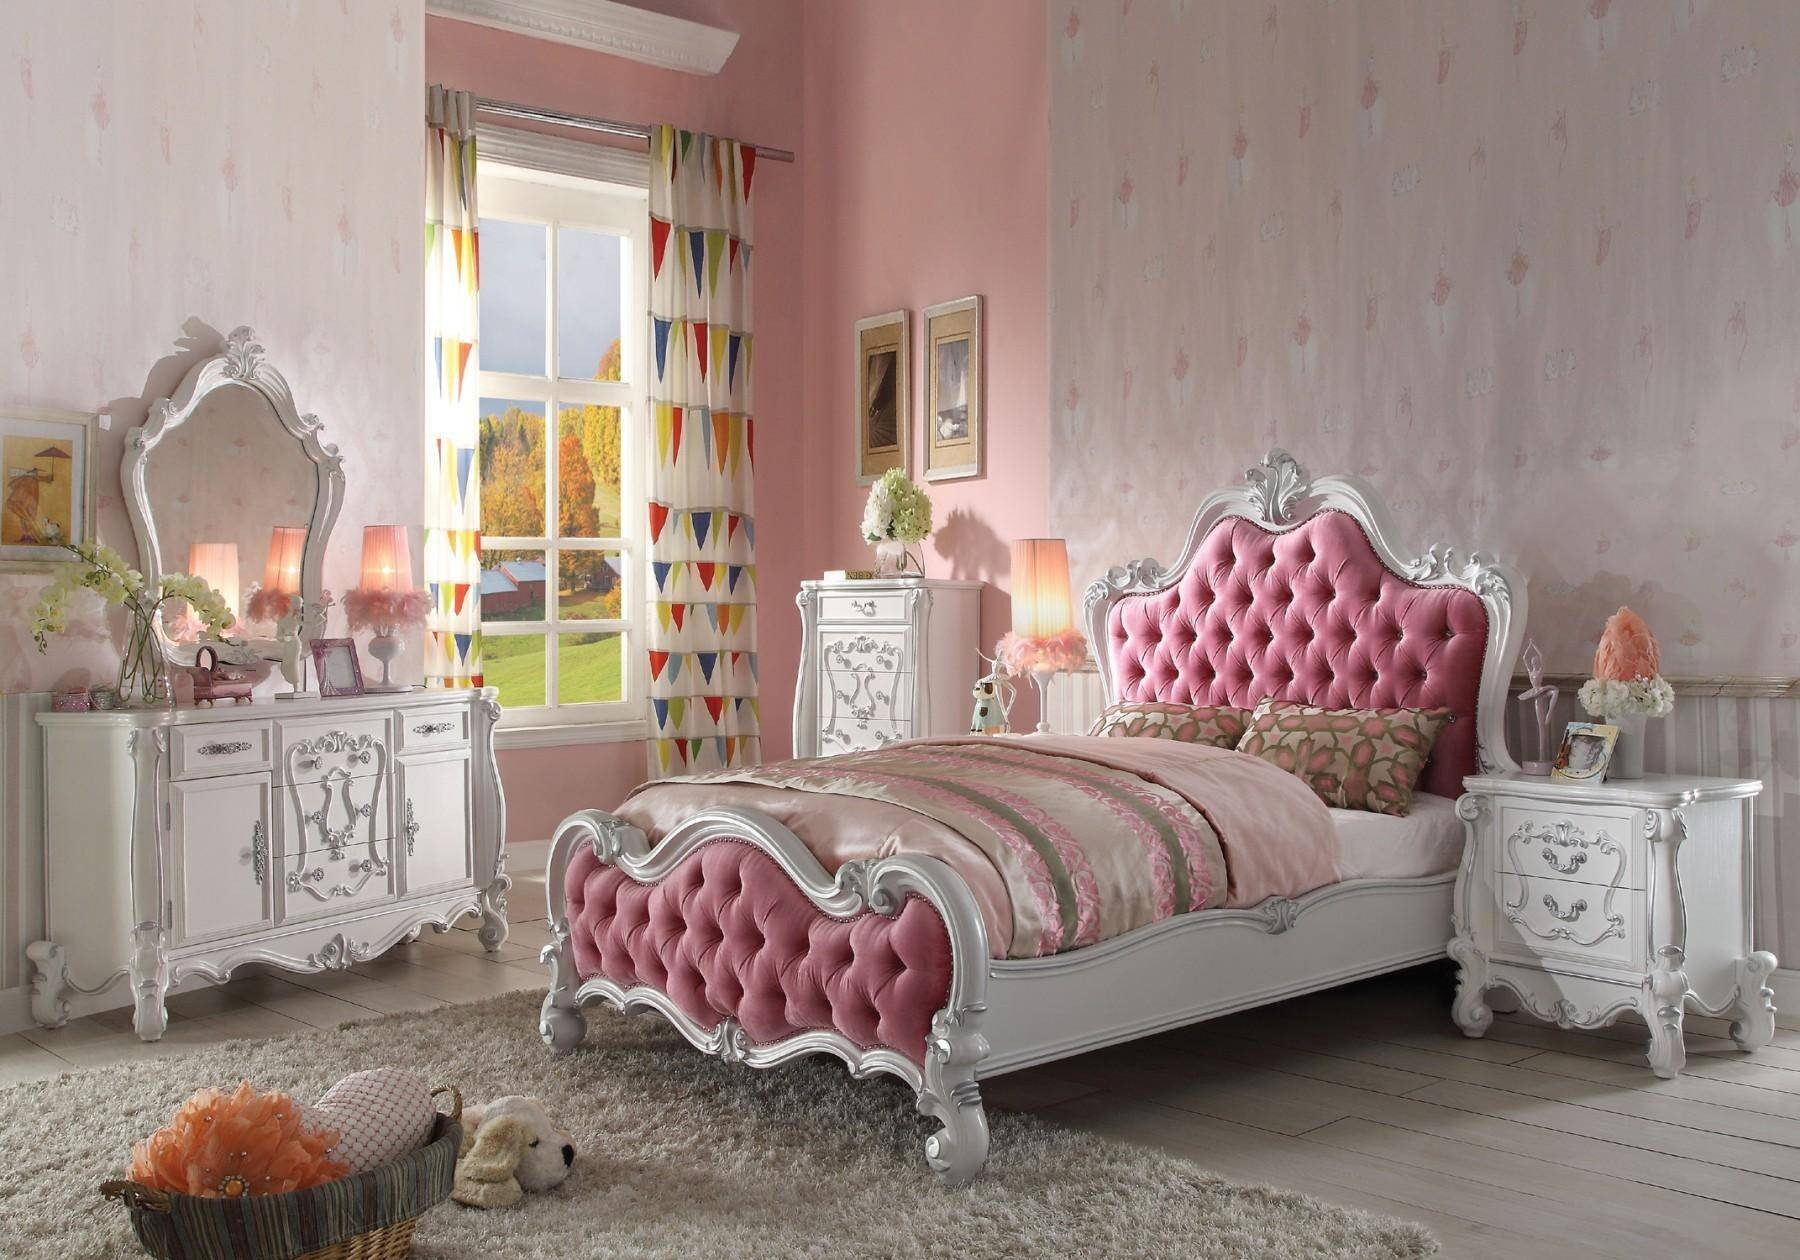 Bedroom Set for Kids Best Of soflex Classic andria Kids Queen Bedroom Set 4pcs Antique